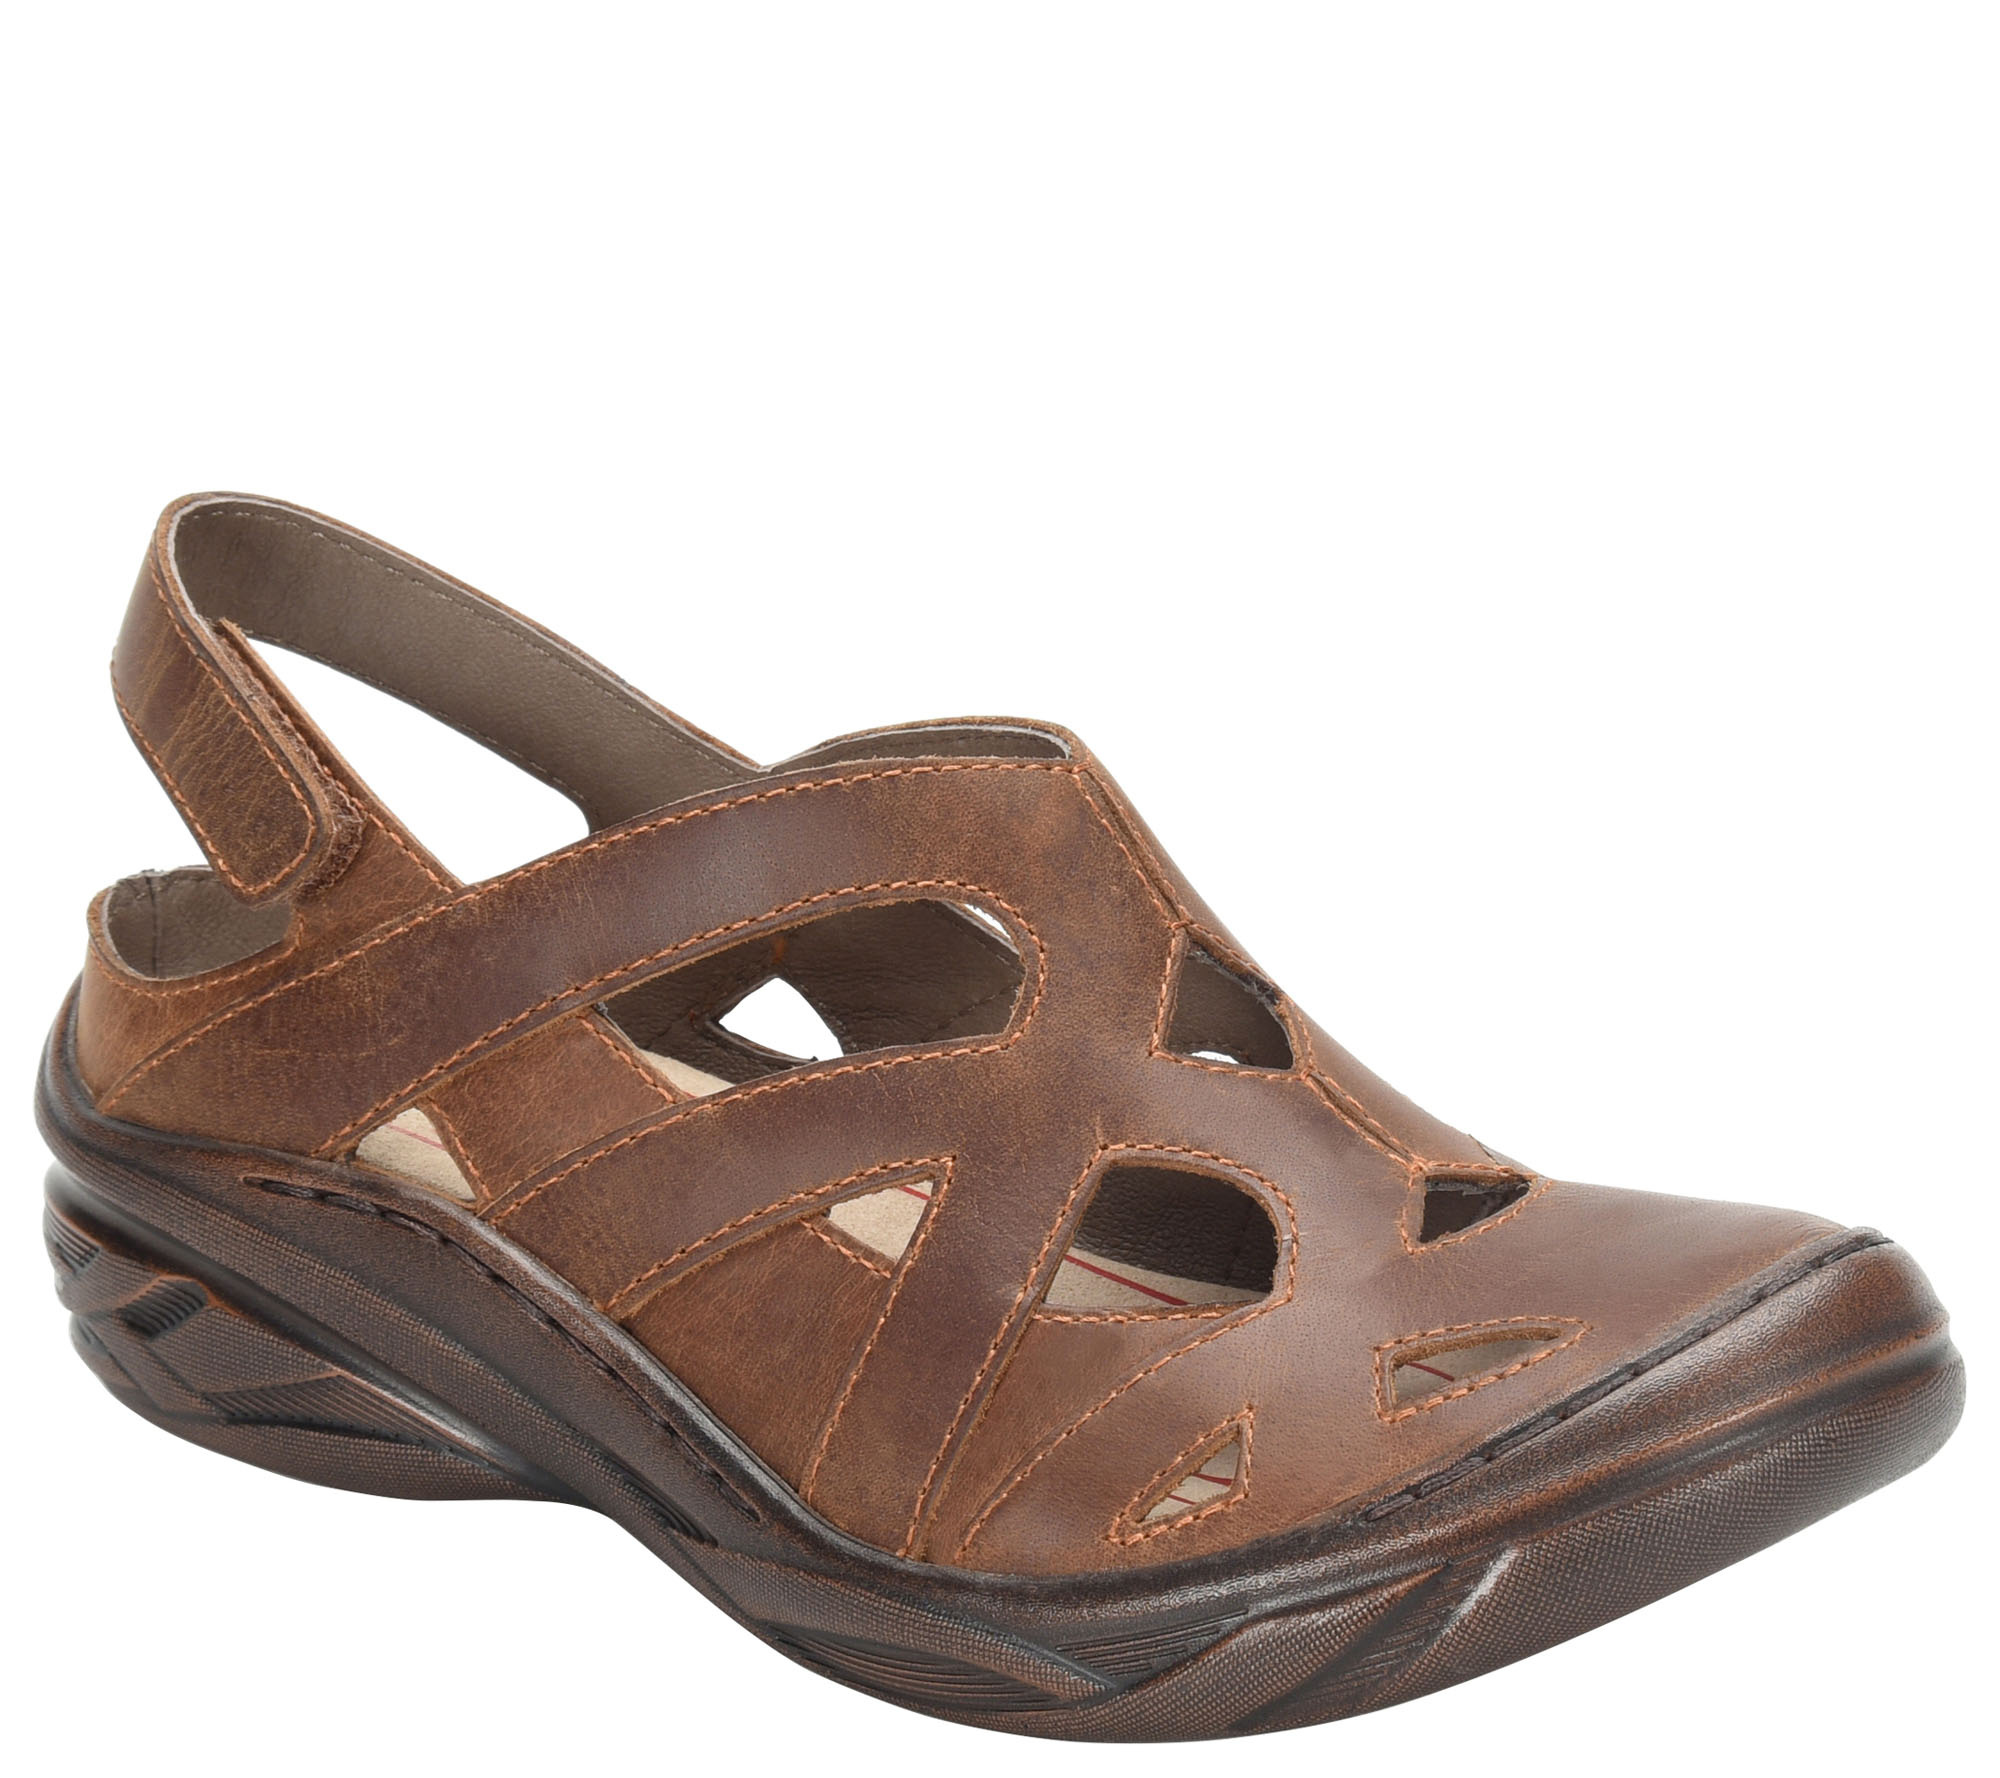 Maclean Leather Sandals